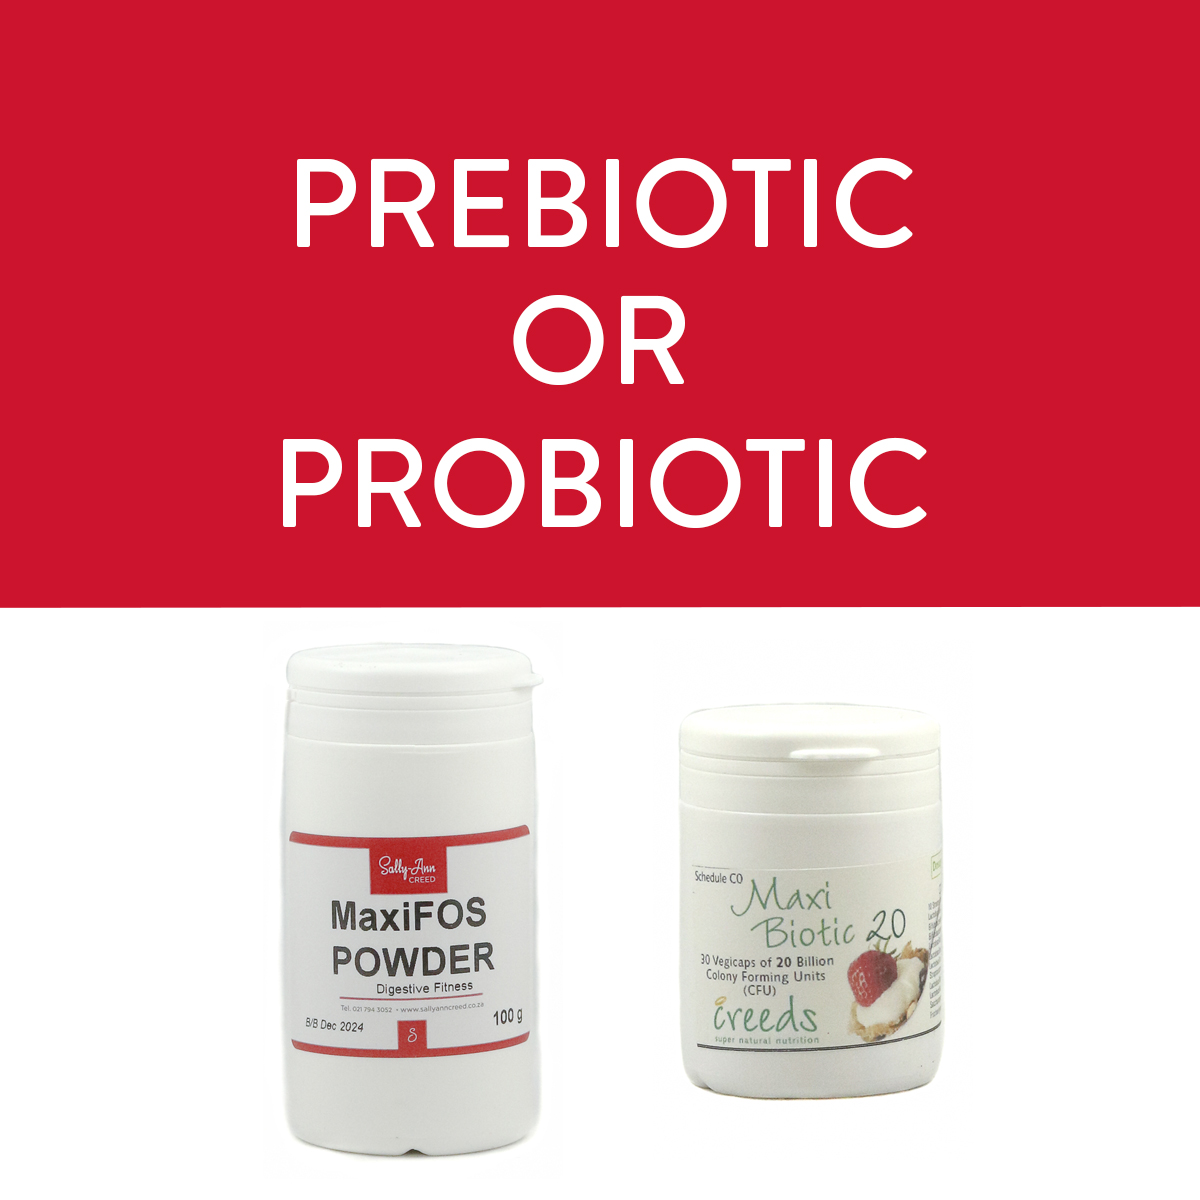 Probiotic and Prebiotic